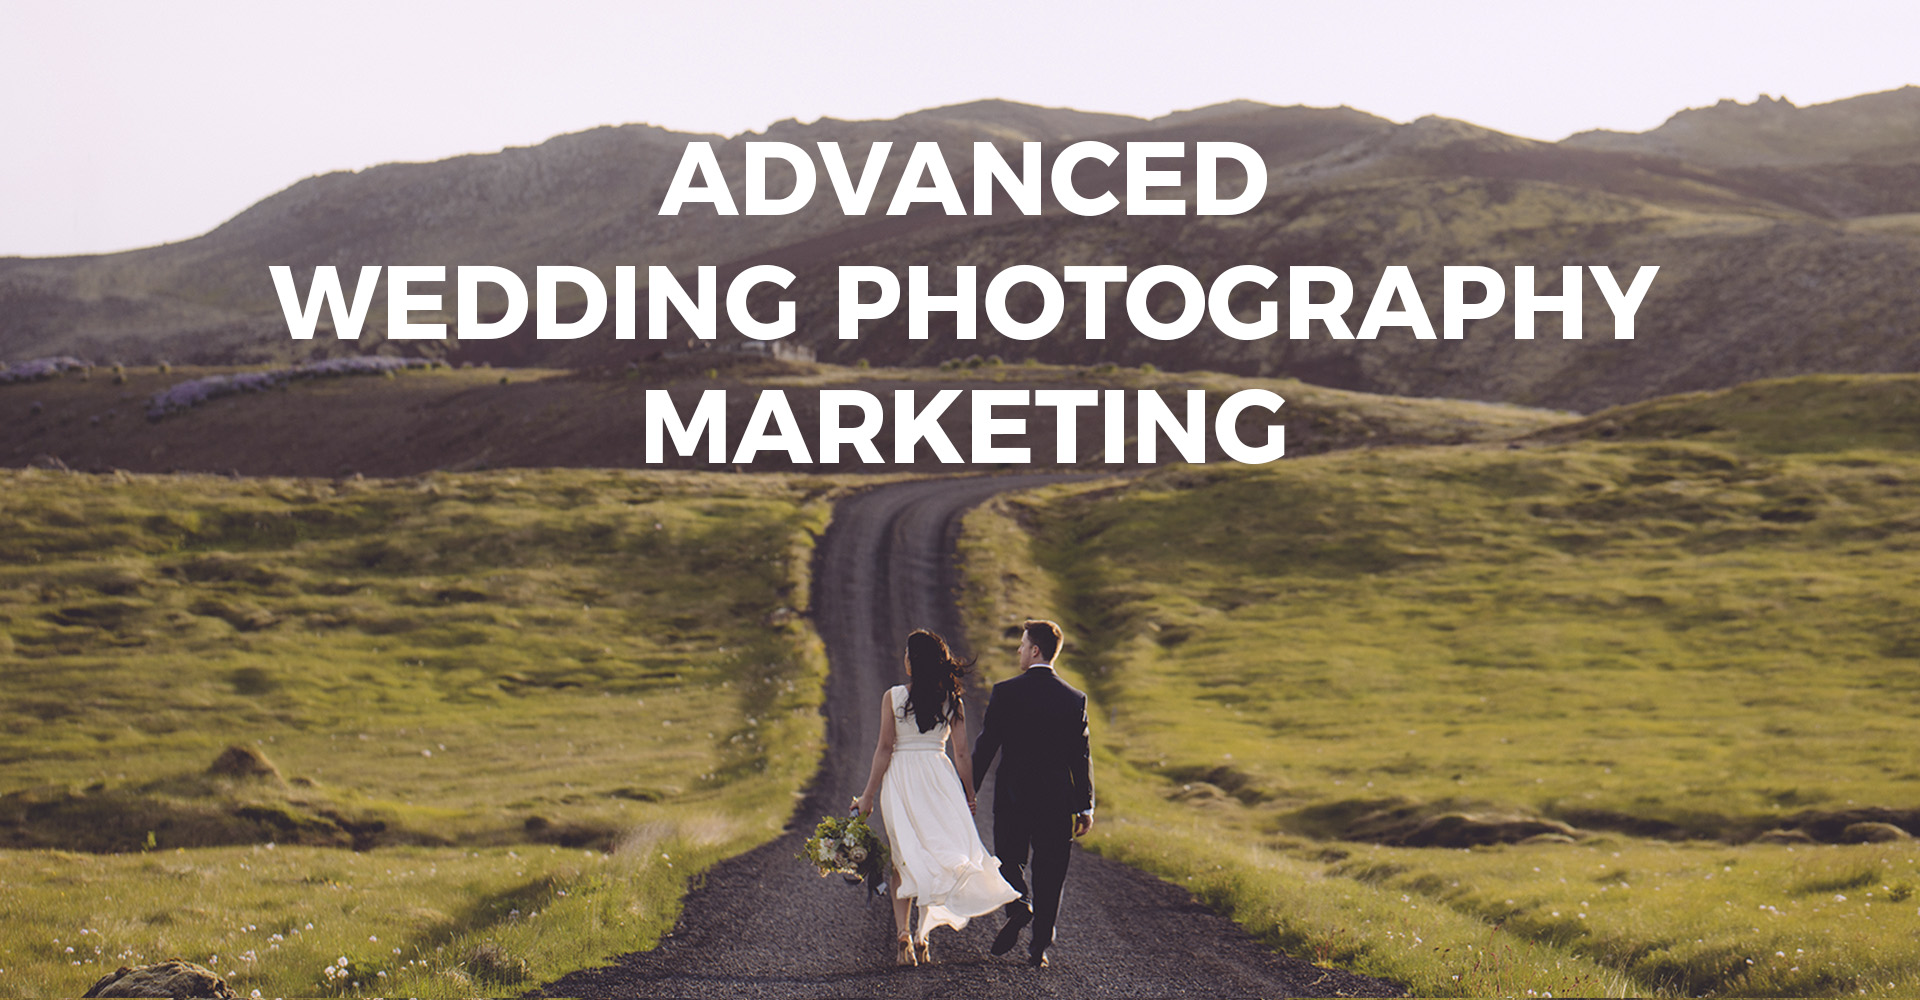 https://taylorjackson.podia.com/advanced-wedding-photography-marketing